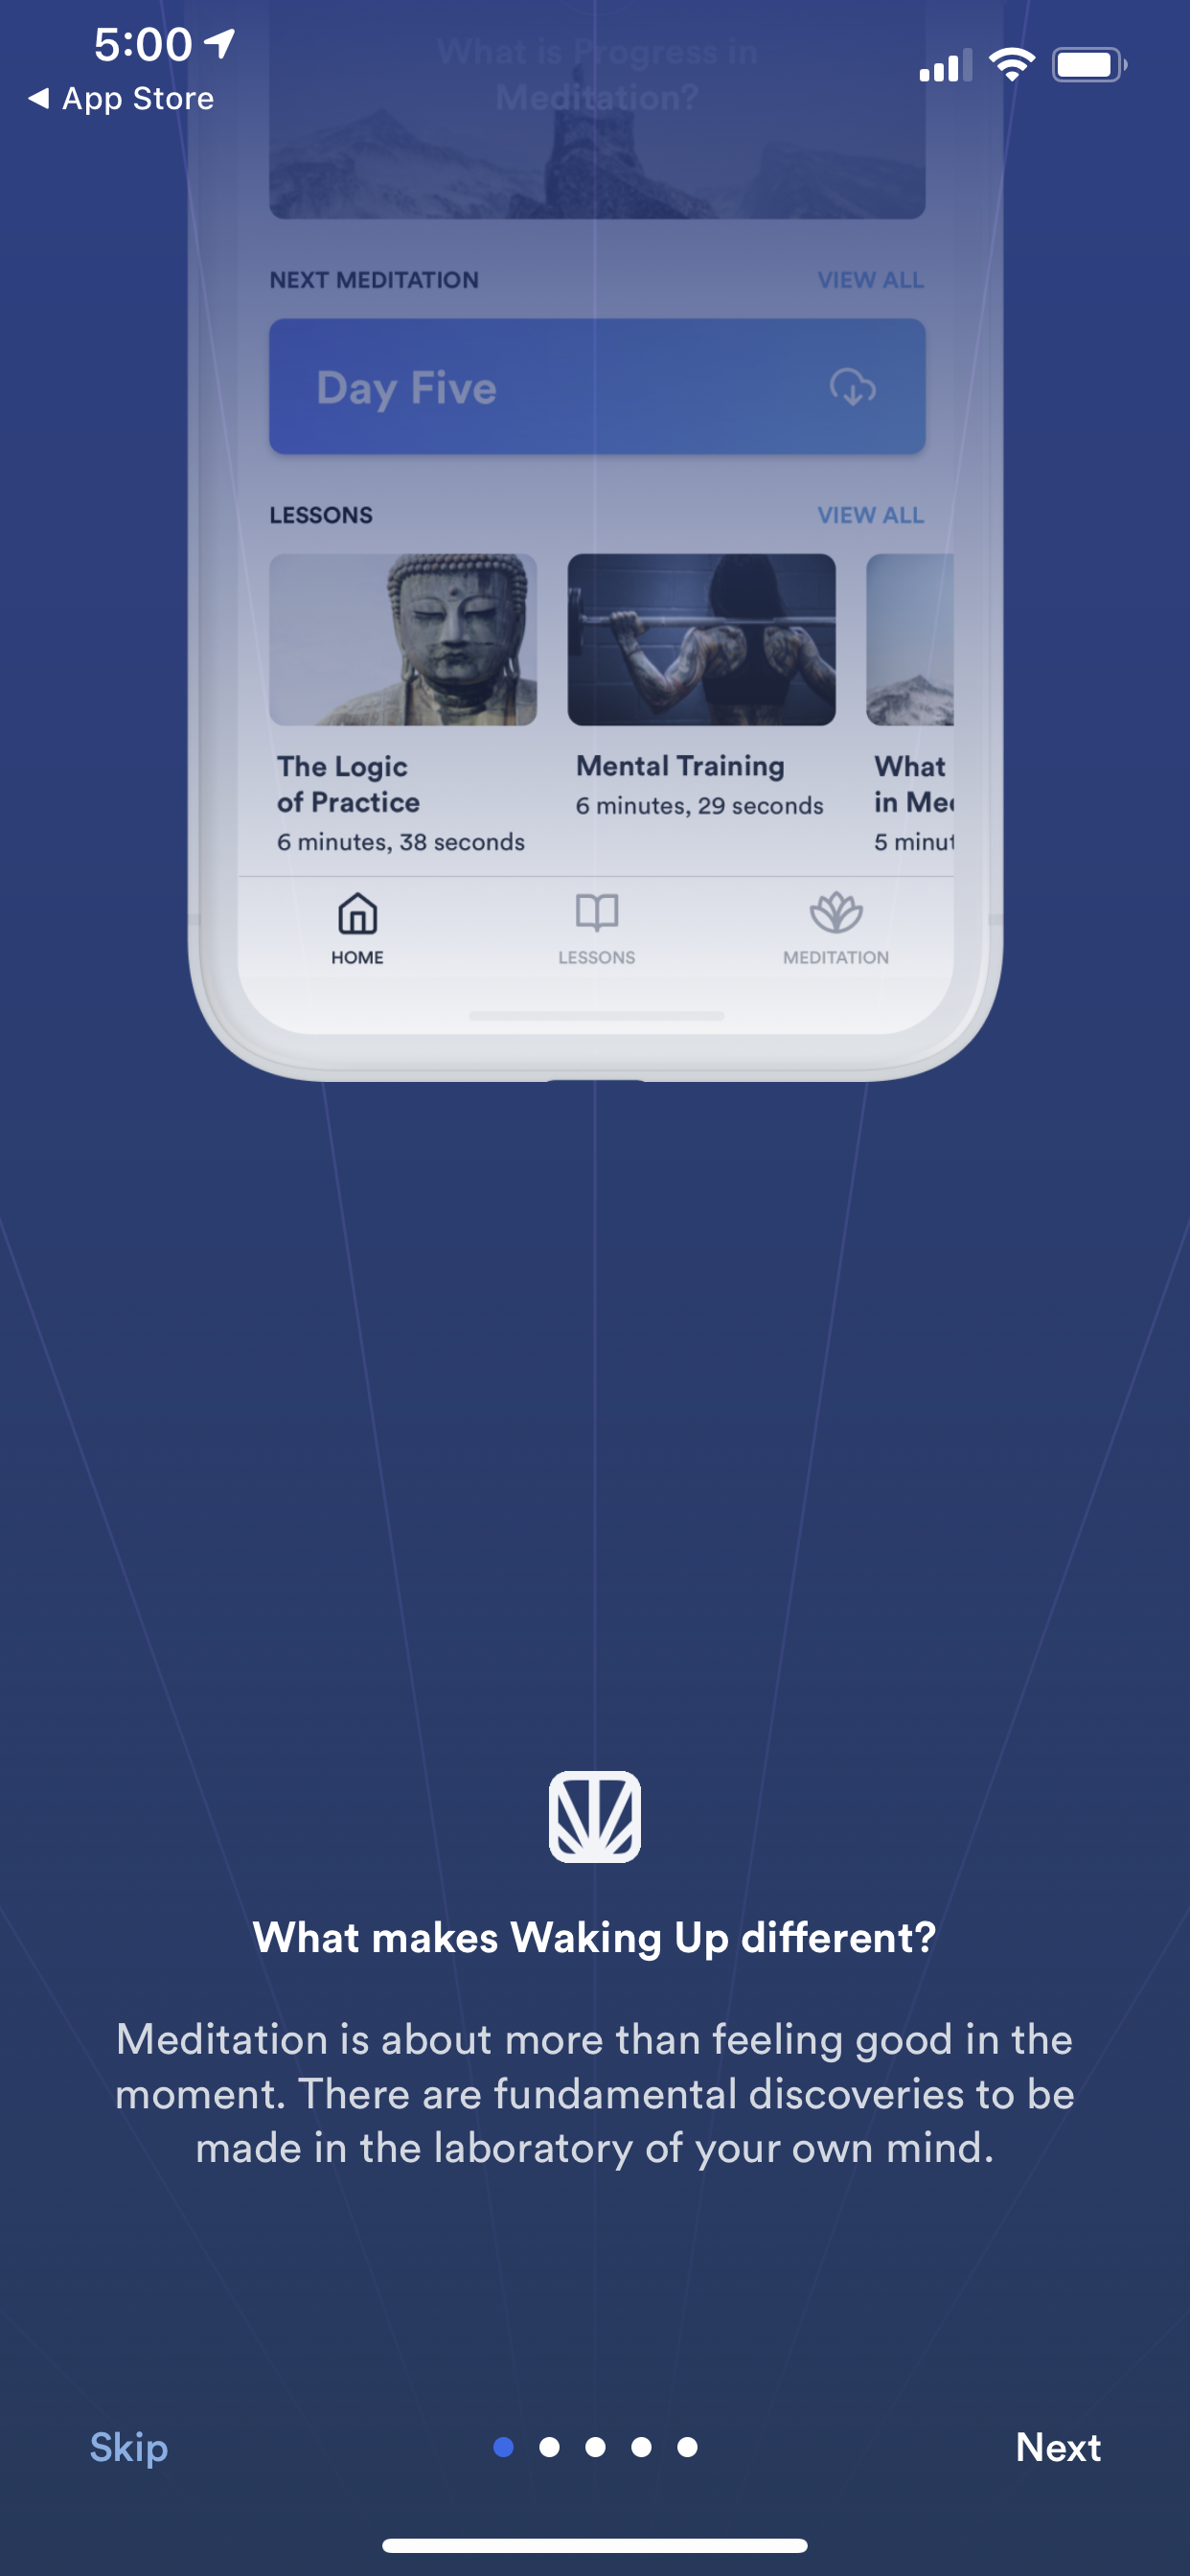 Pin by Oz Lubling on mobile interfaces Meditation apps